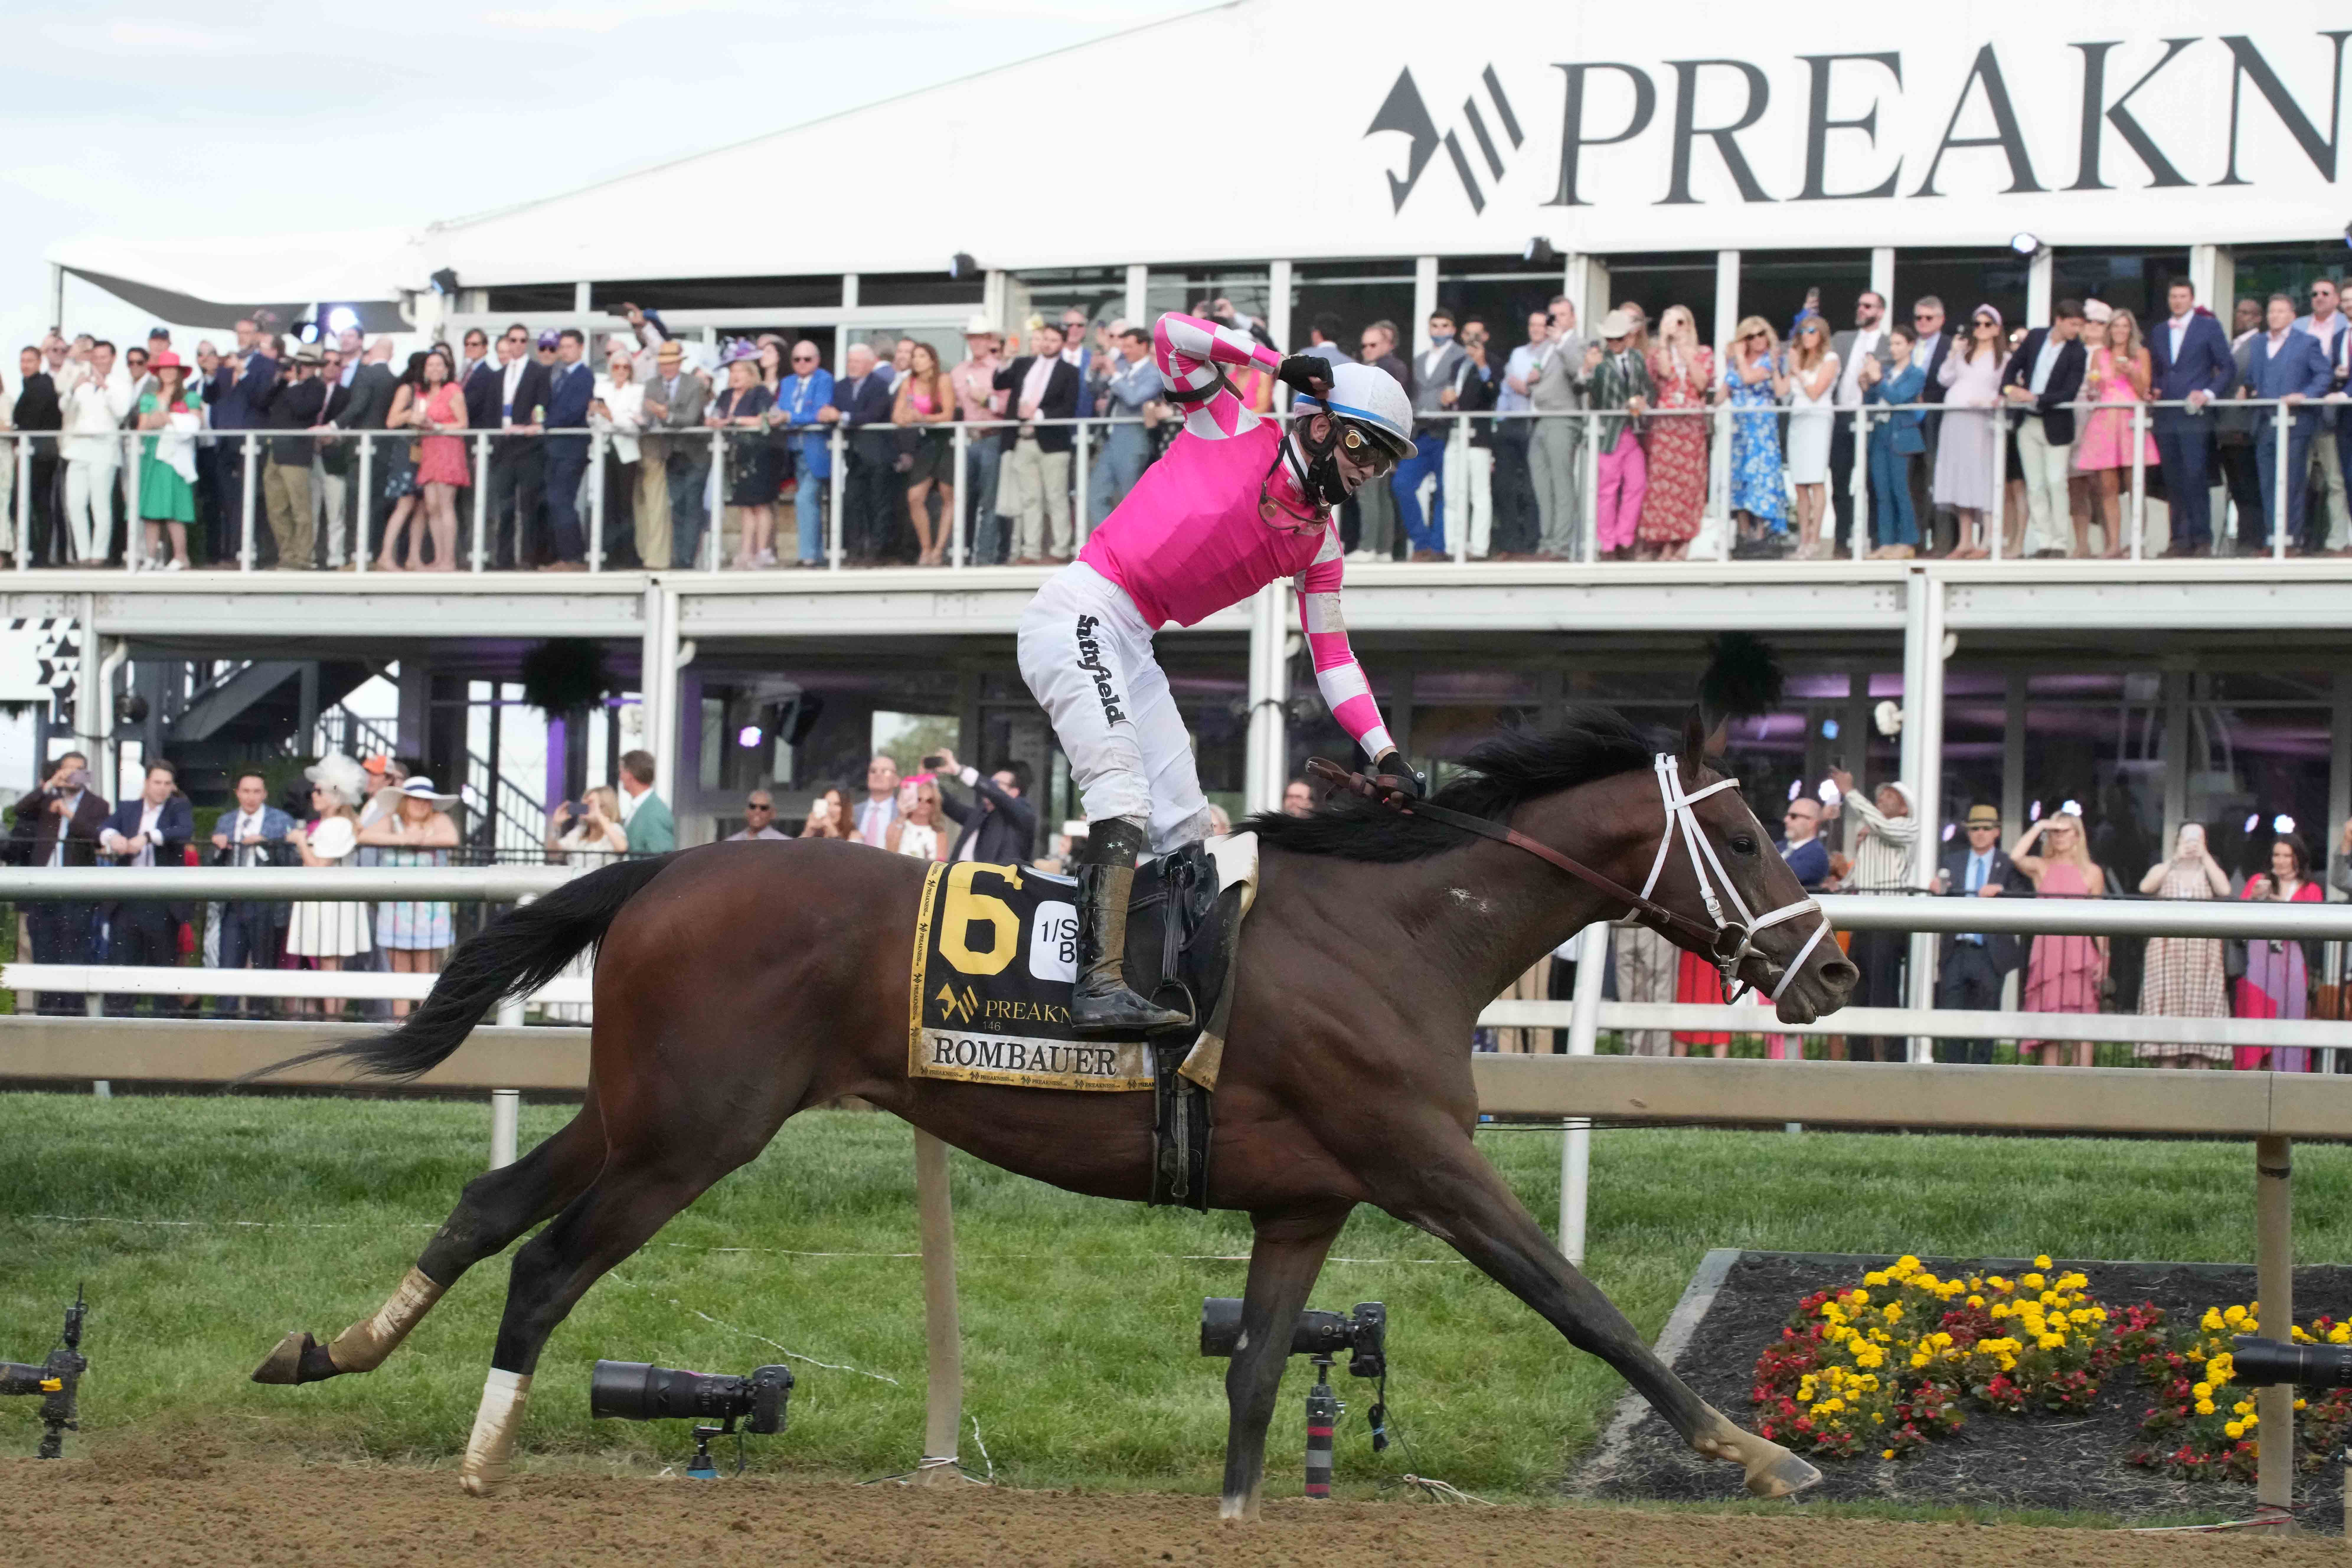 Preakness Stakes payouts following Rombauer s win at Pimlico